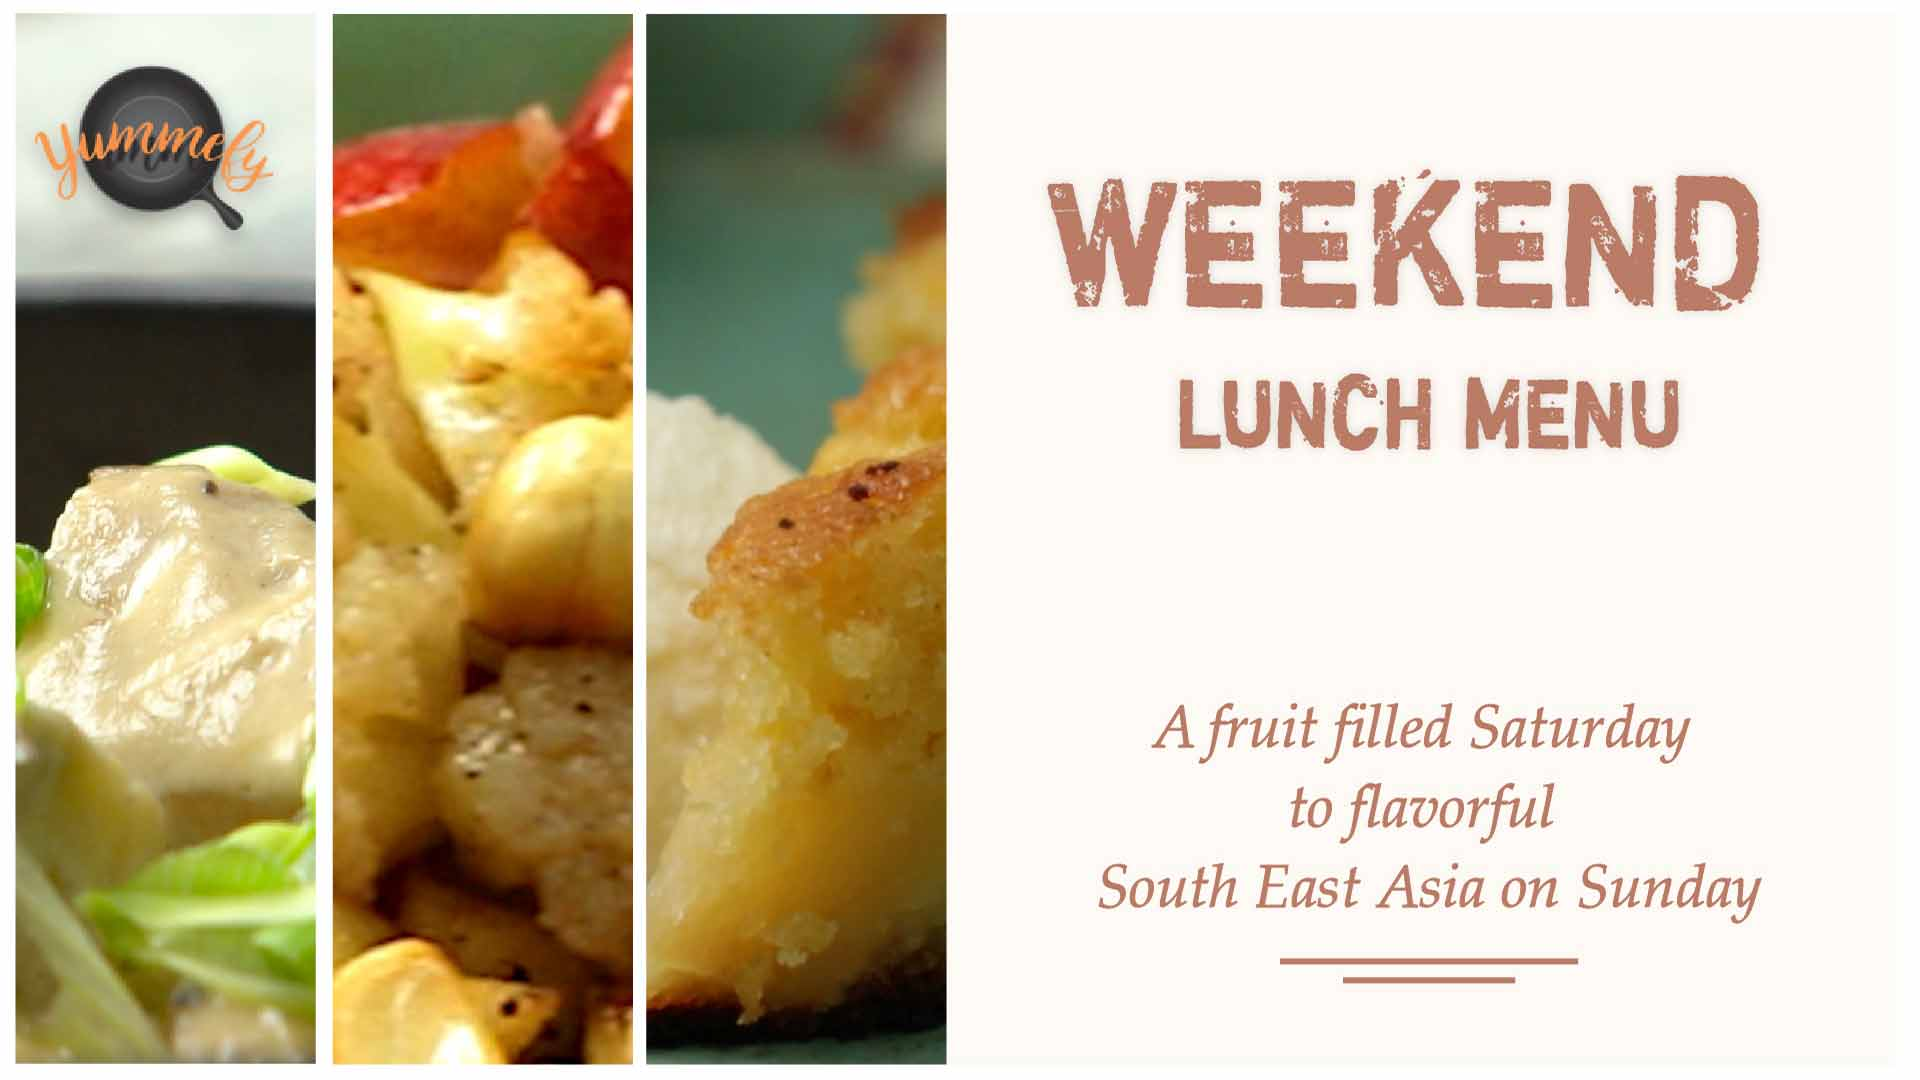 Weekend Lunch Menu | Fruity Continental to  South East Asia